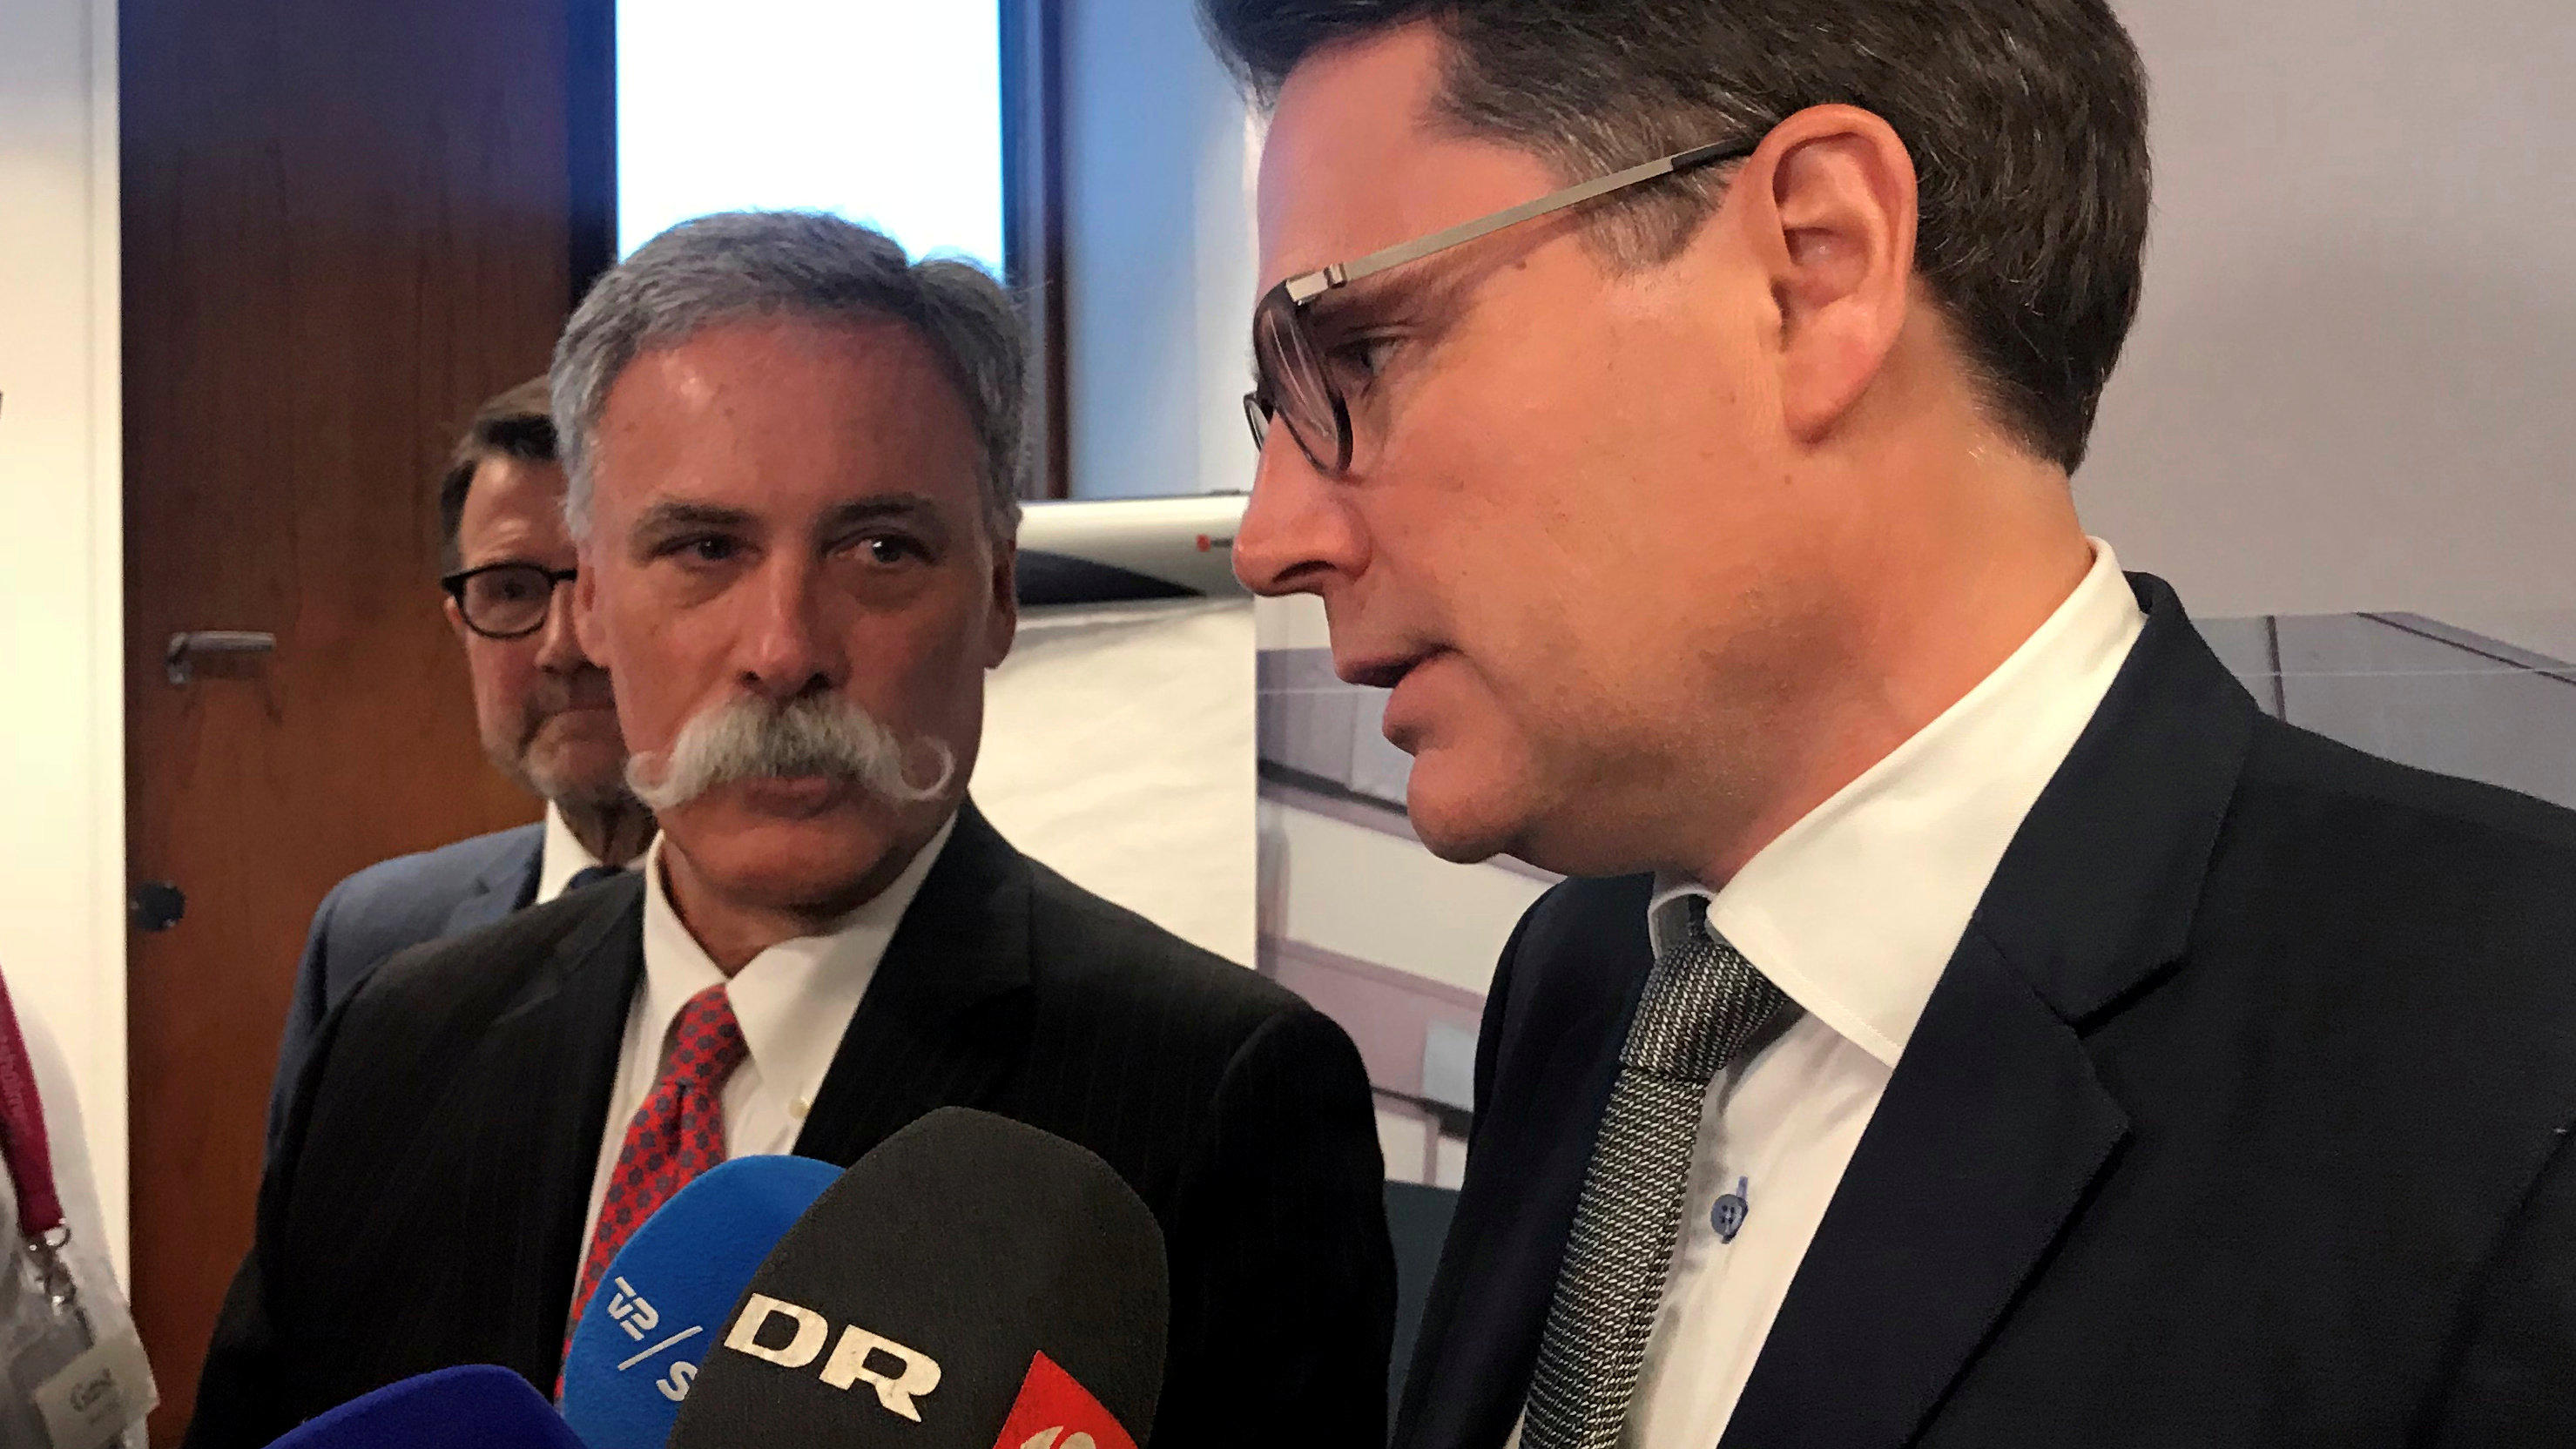 Formula One chief executive Chase Carey (L) and Denmark's Minister for Industry, Business and Financial Affairs Brian Mikkelsen speak to media in Copenhagen, Denmark January 10, 2018. REUTERS/Stine Jacobsen